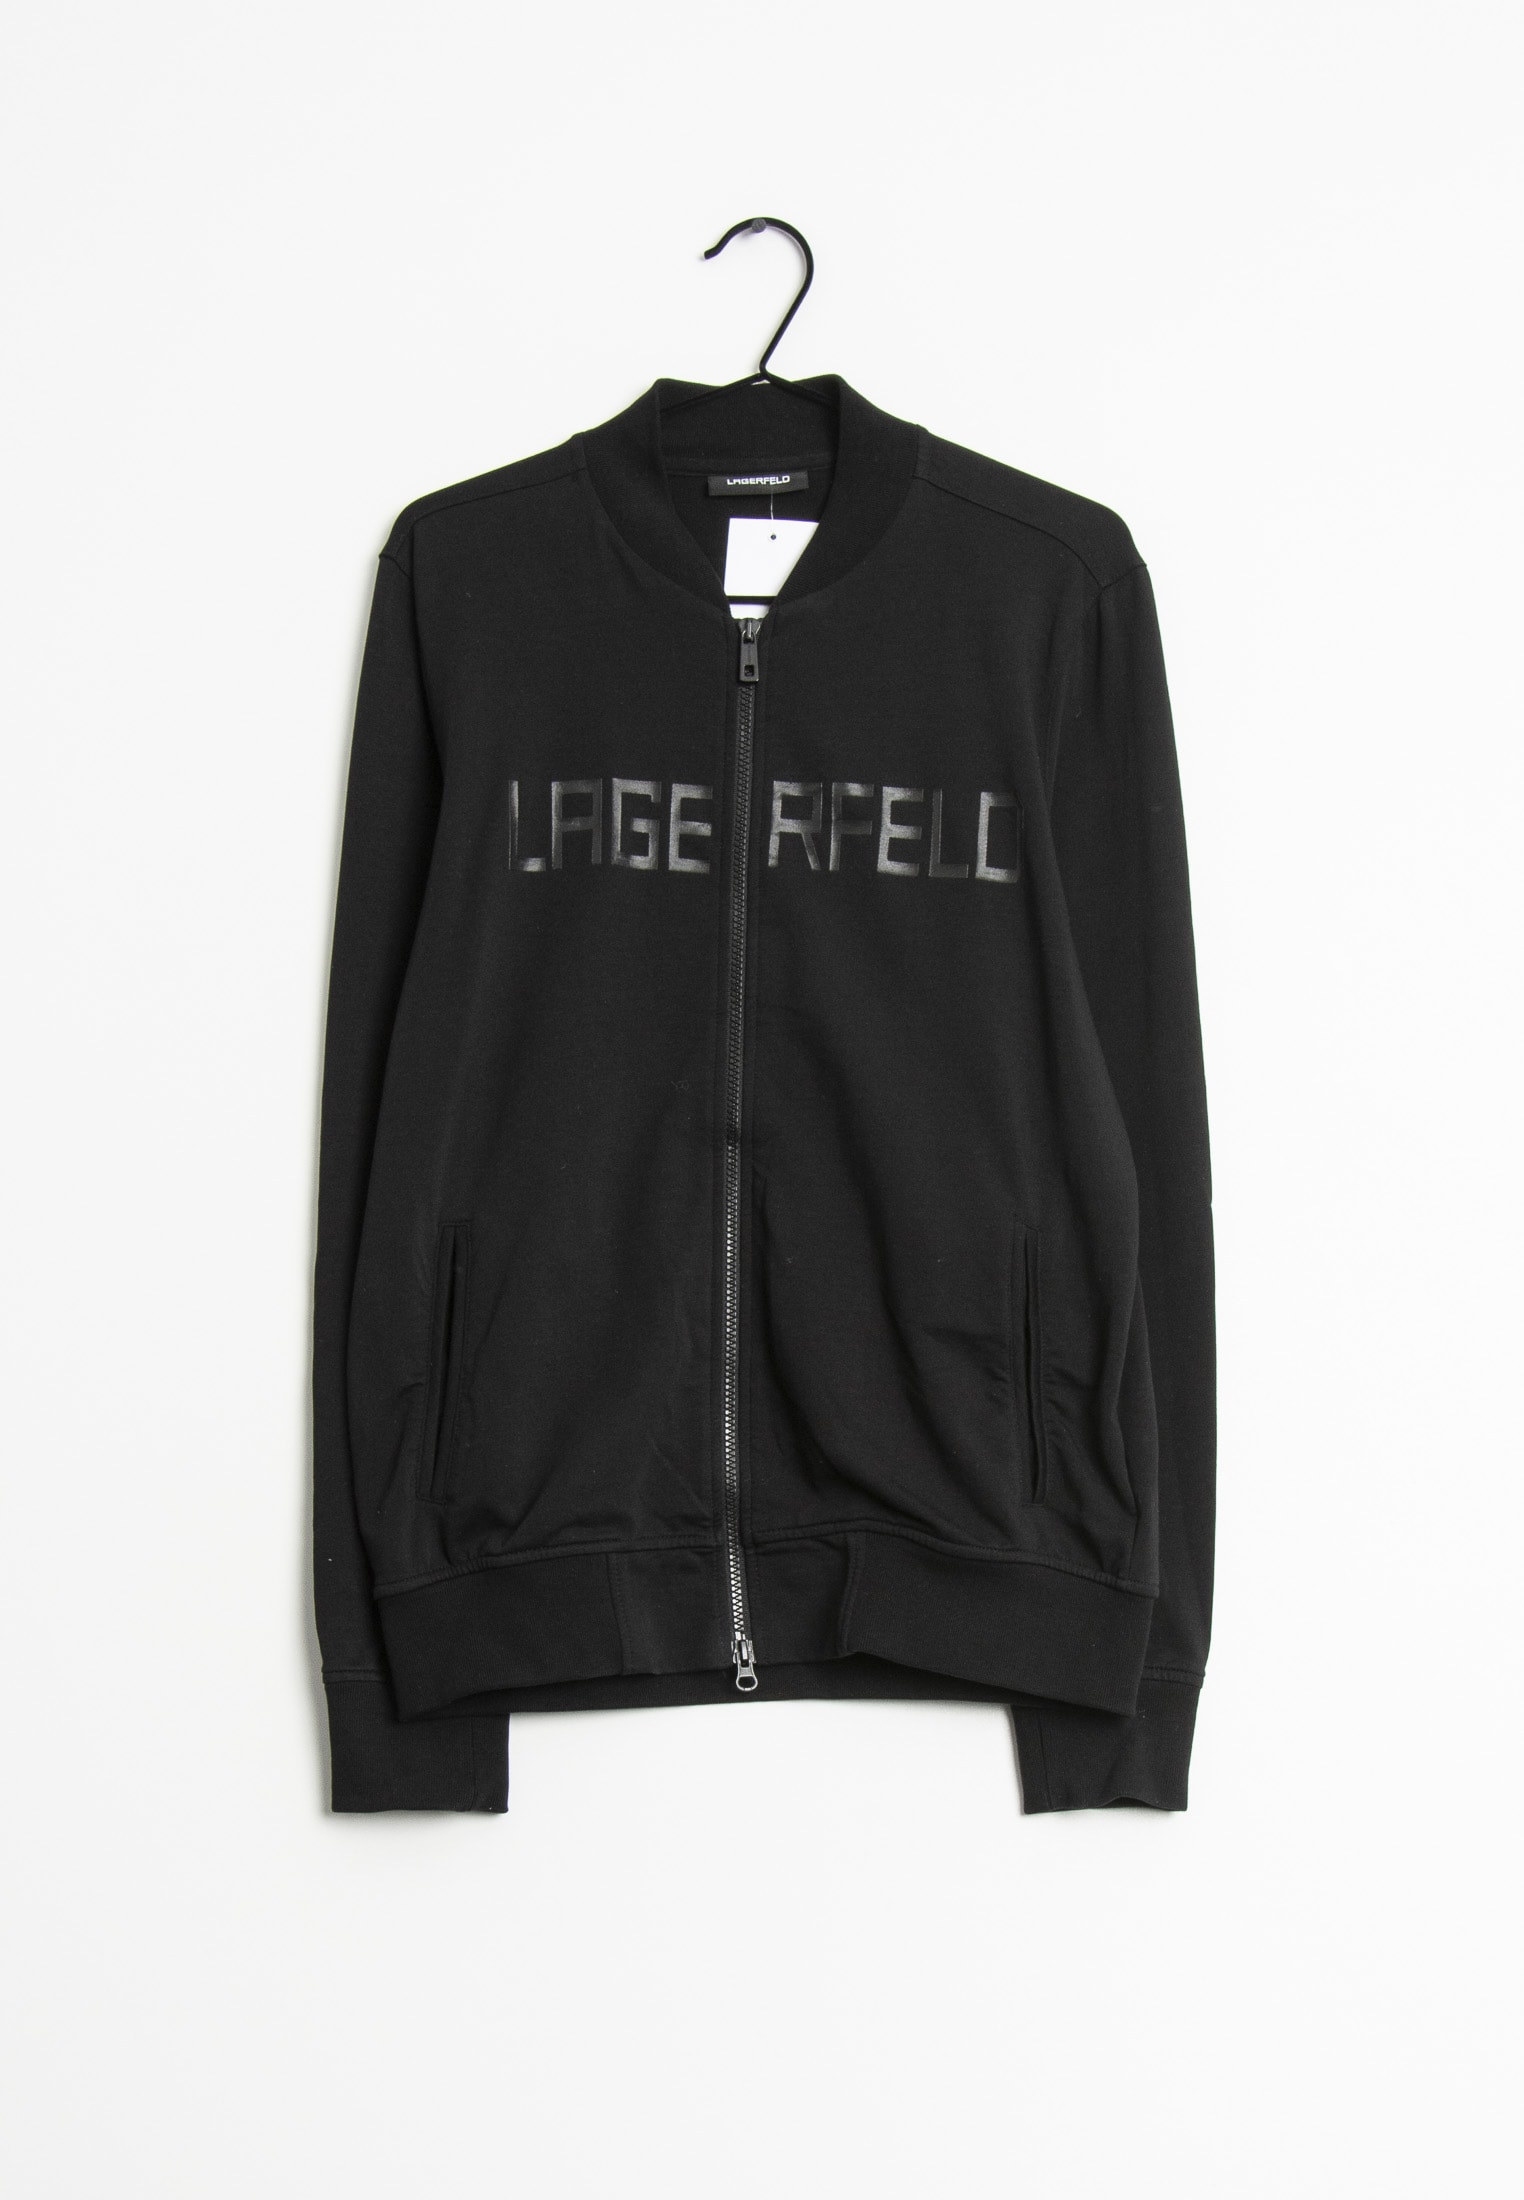 Lagerfeld Sweat / Fleece Schwarz Gr.S